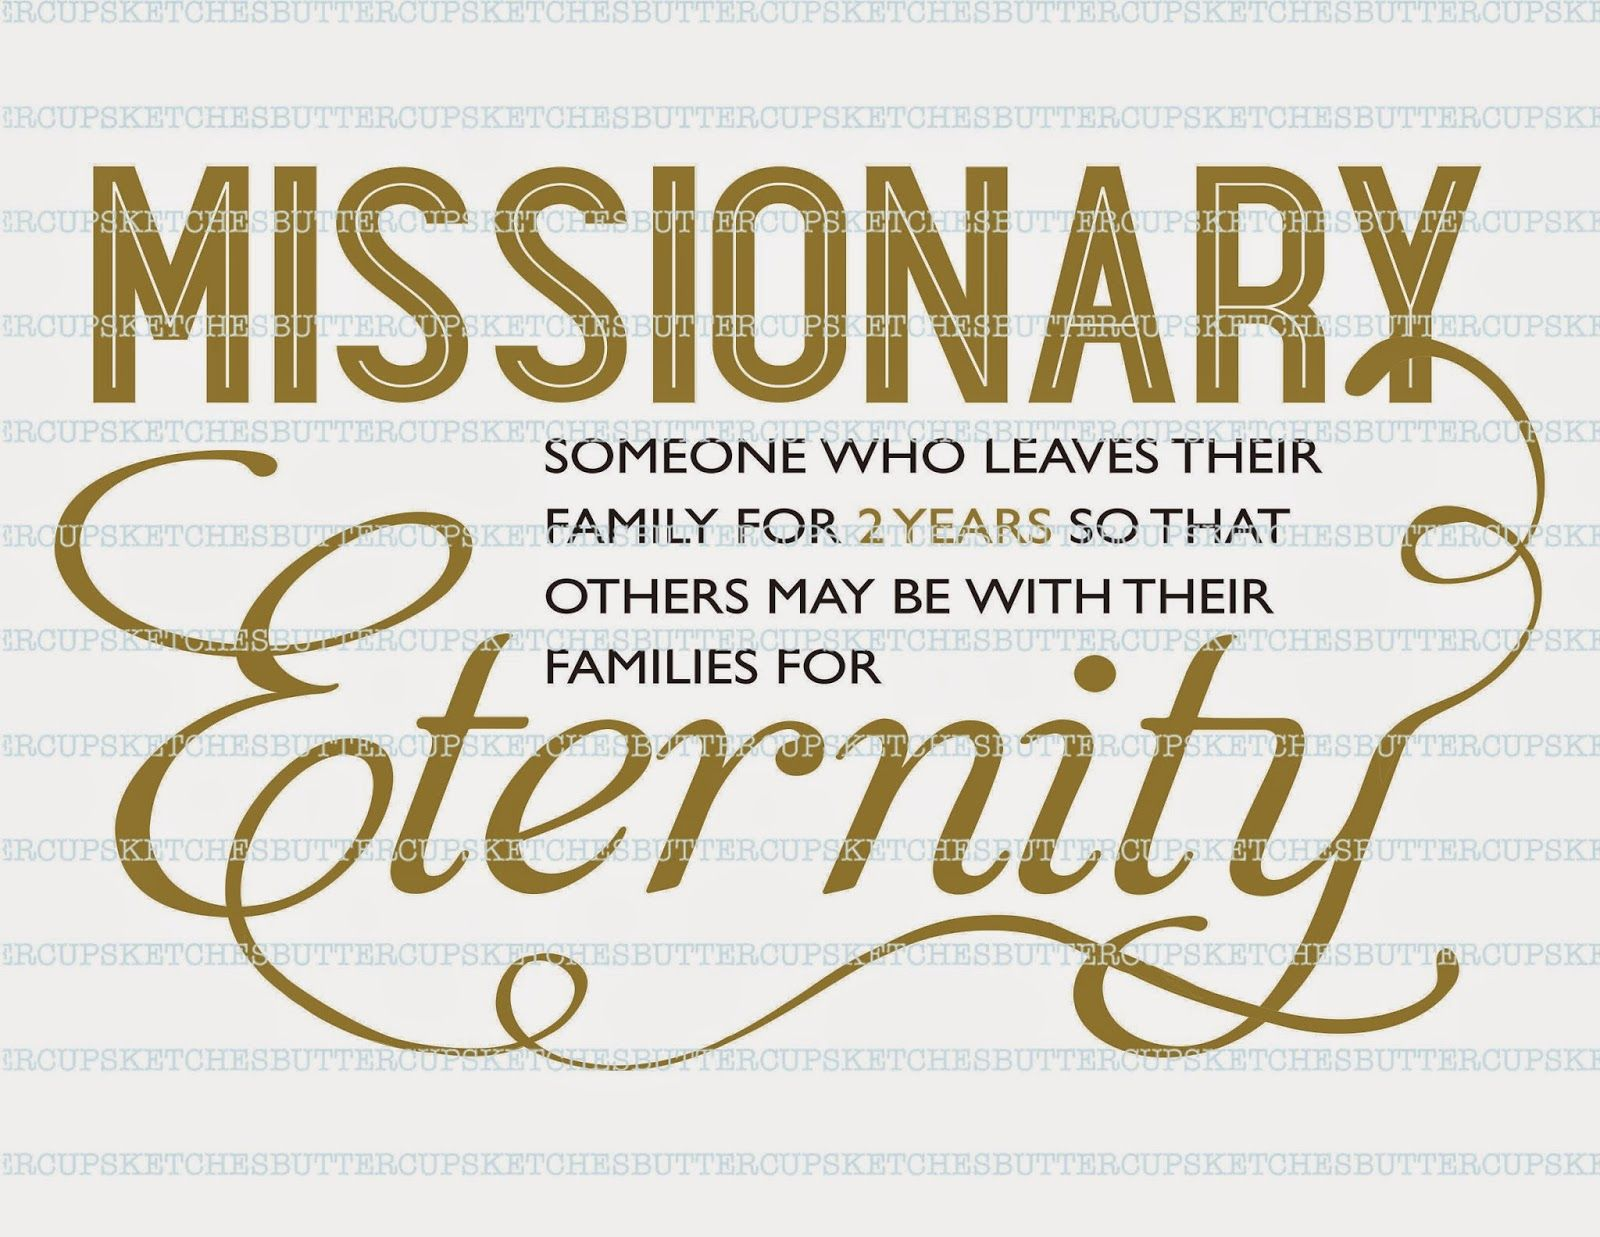 Lds Missionary Quotes Missionary Inspirational Quotes That Sume Lds Missionary Quotes